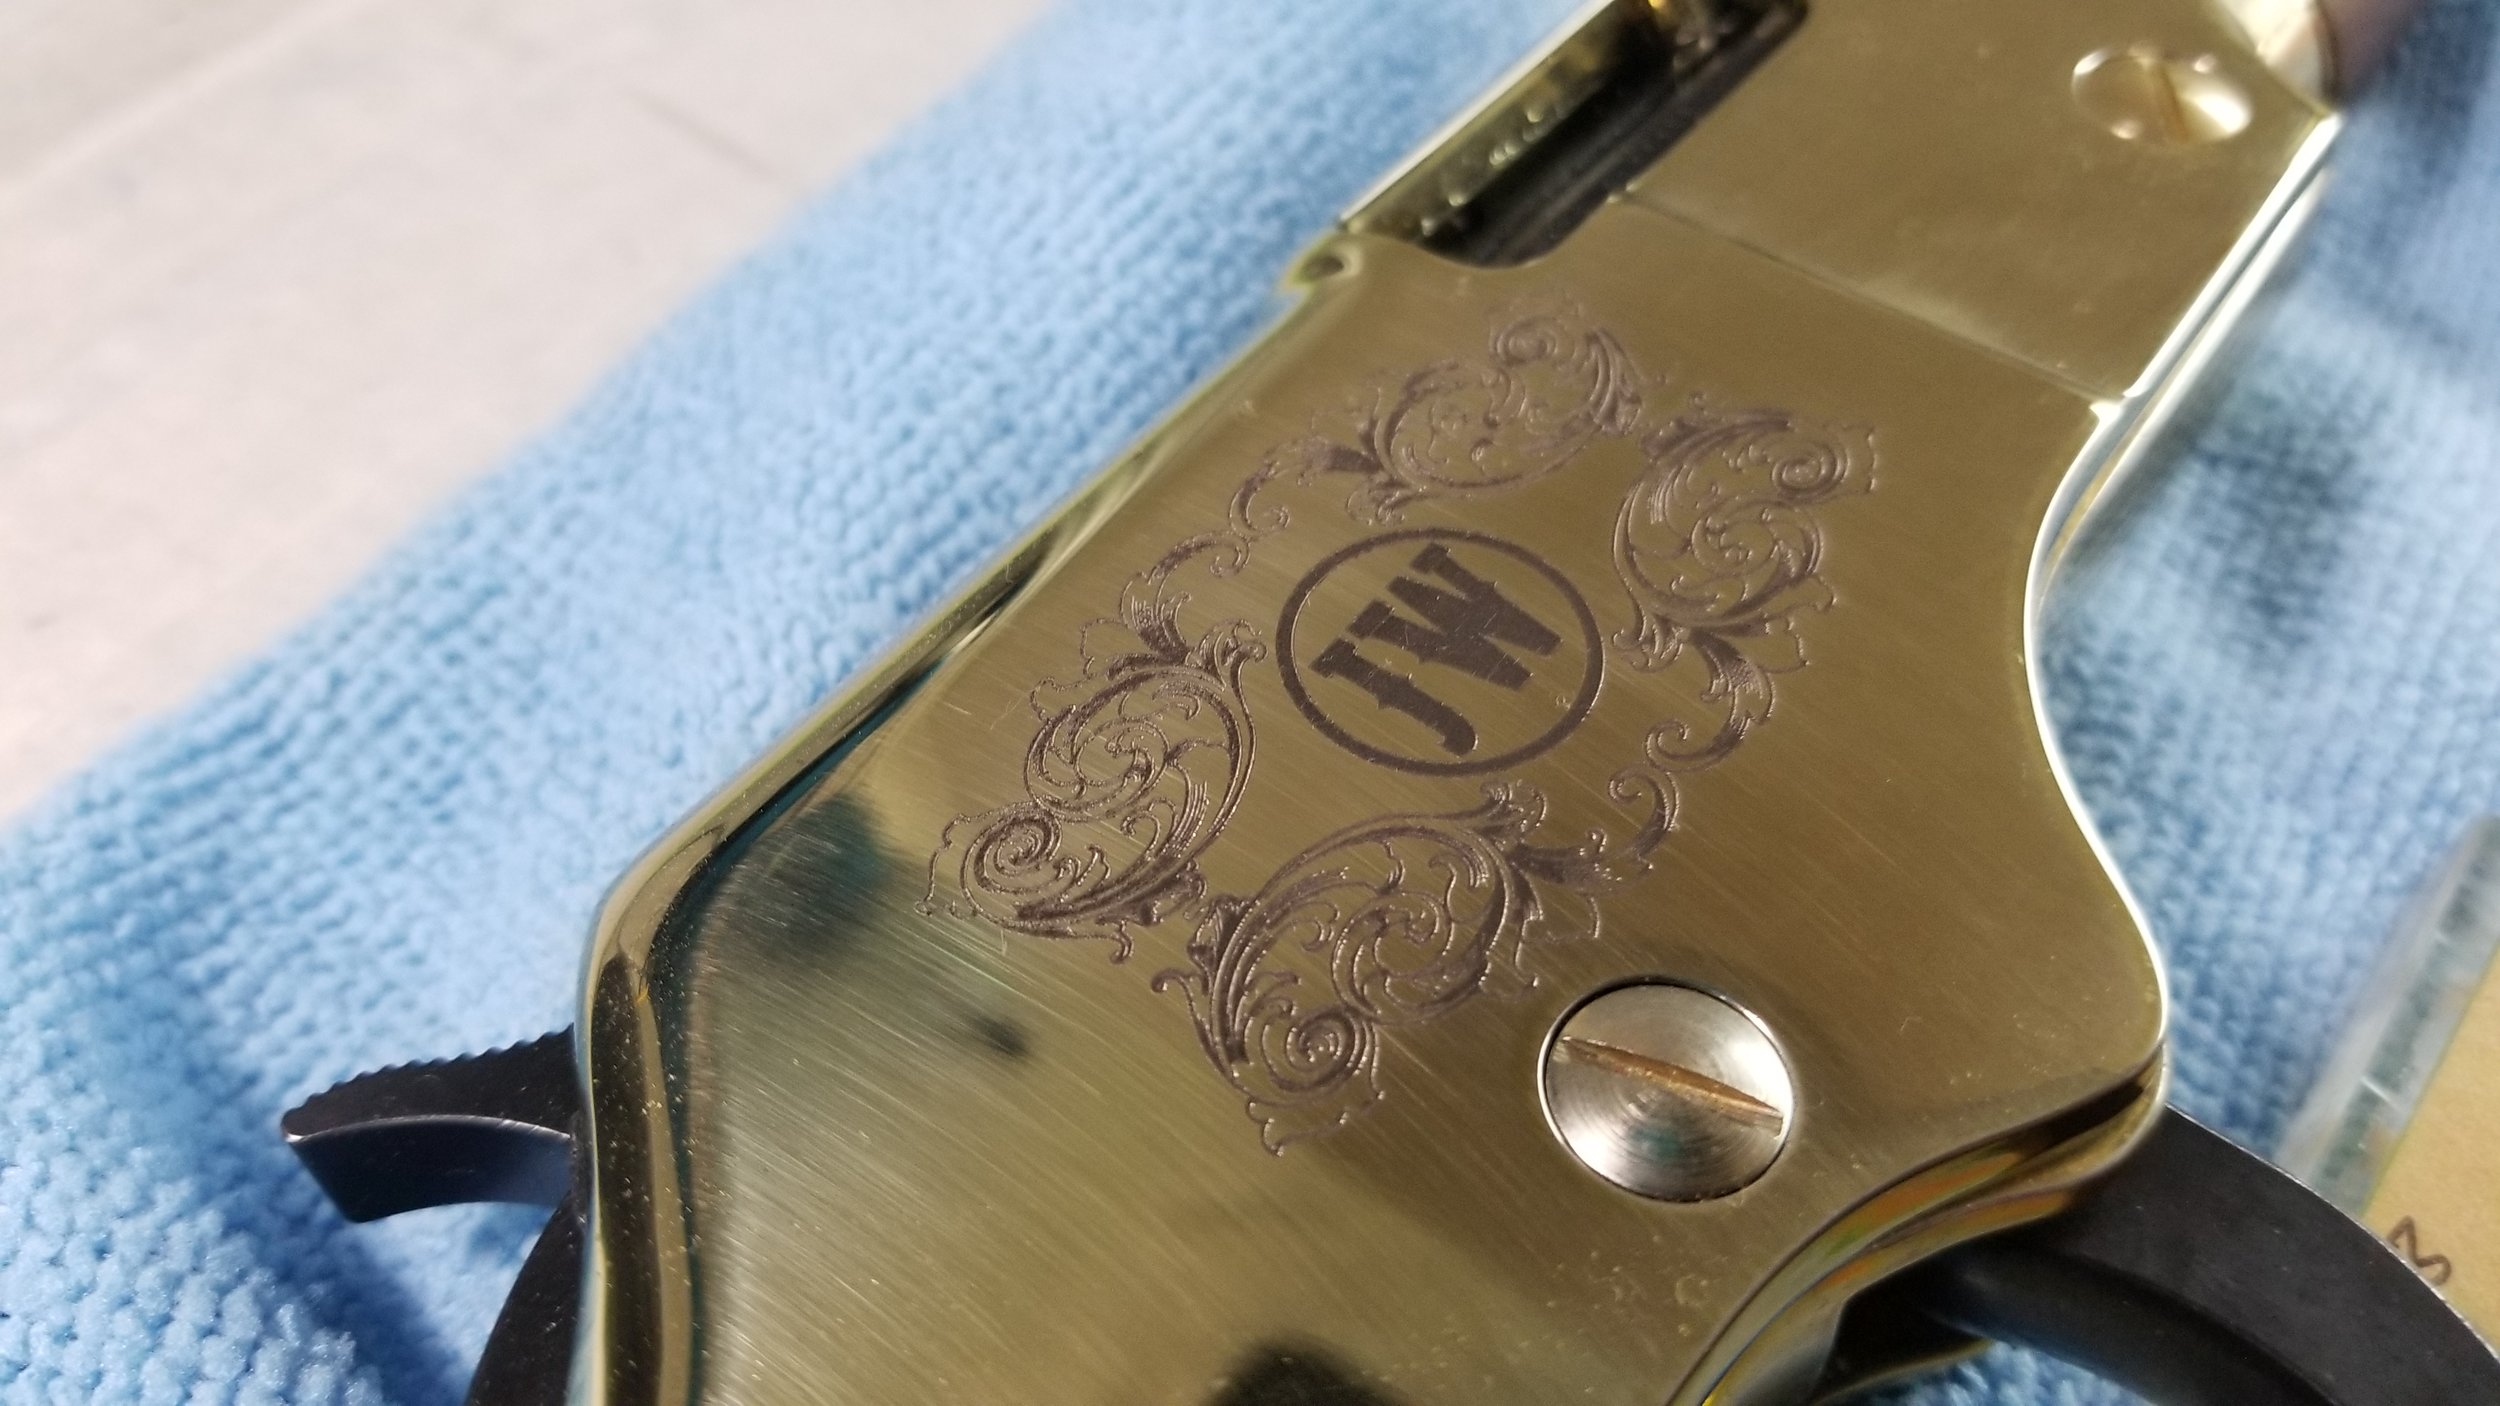 Engraved Rifle - Personalized Rifle - Custom Rifle - Firearm Engraving Projects - Engrave It Houston